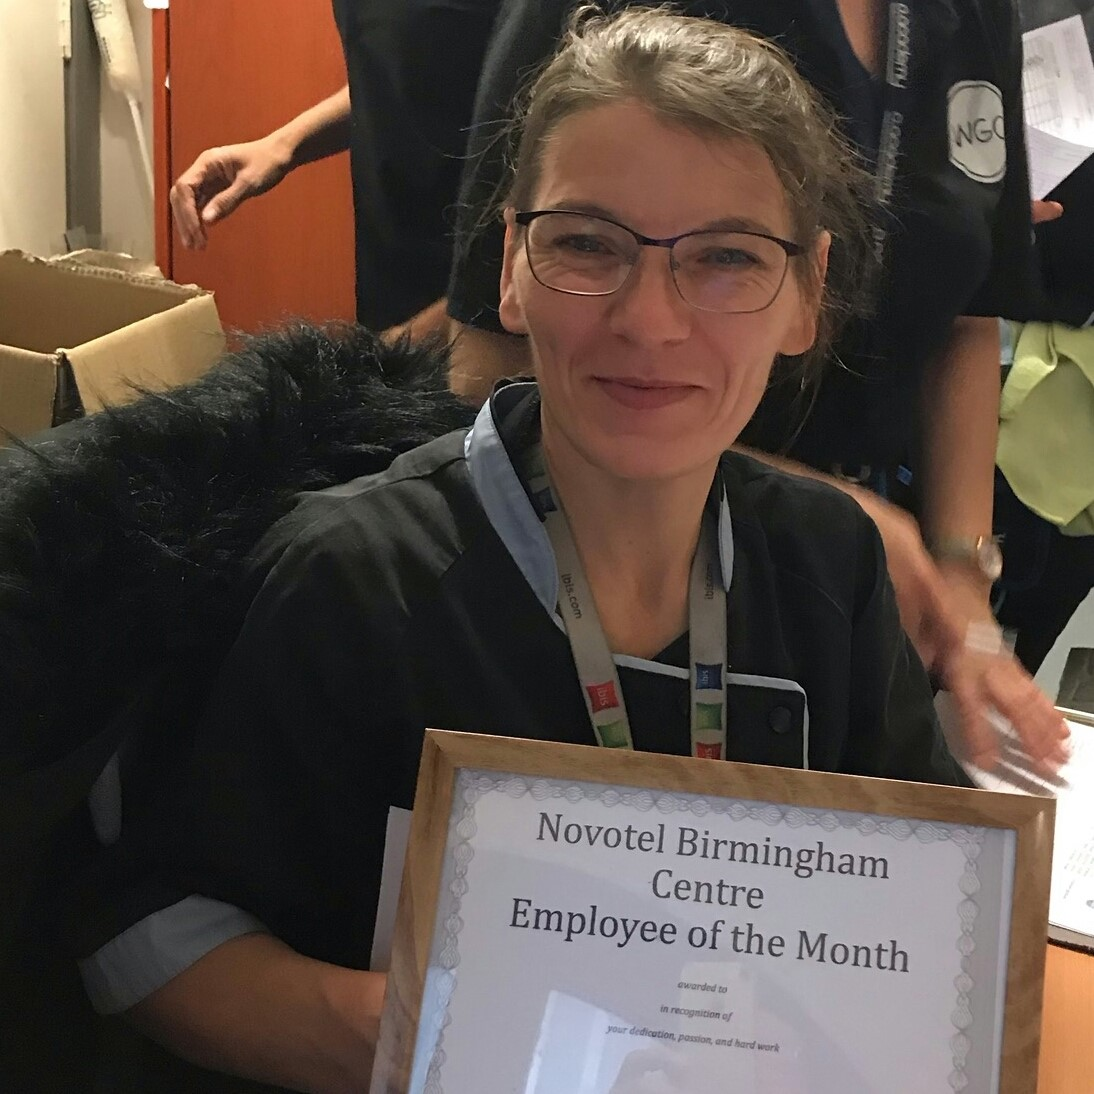 Well done to Dorota Melaniuk from Novotel Birmingham Centre for being named as Decembers employee of the month. Thank you for all your hard work on both Public areas and your executive rooms!  #Housekeeping #Hotels #OneBestWay #WGC #Team #LoveToClean  #HotelHousekeepingpic.twitter.com/LSvrBHzmOV